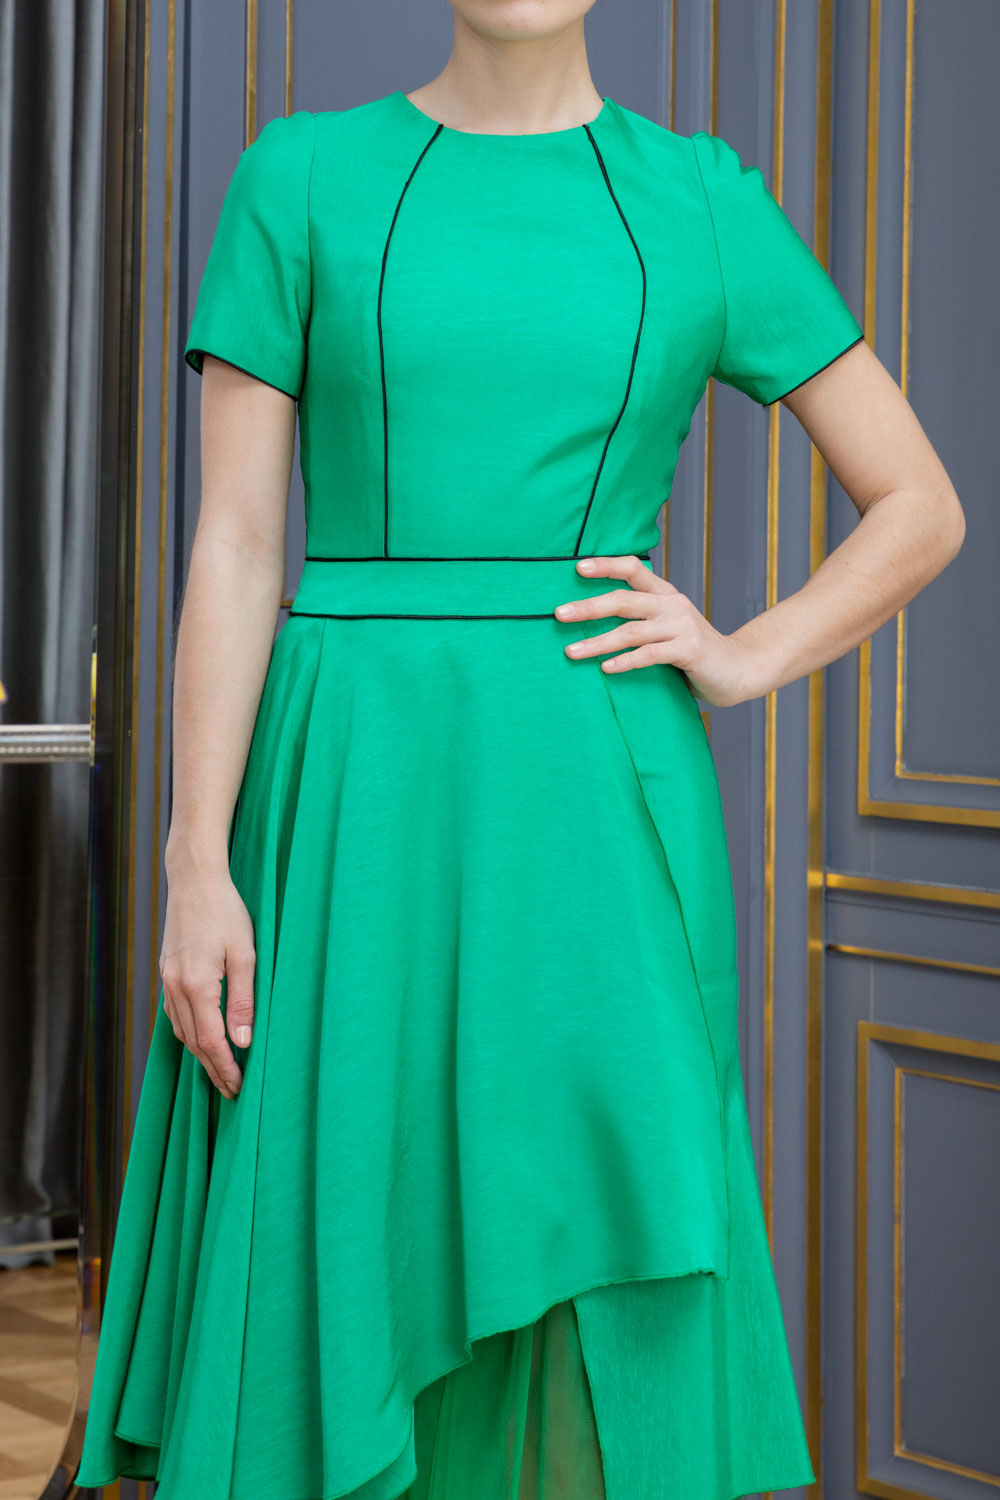 Kelly Green fit and flare dress with bodice piping, ruffled skirt and petticoat